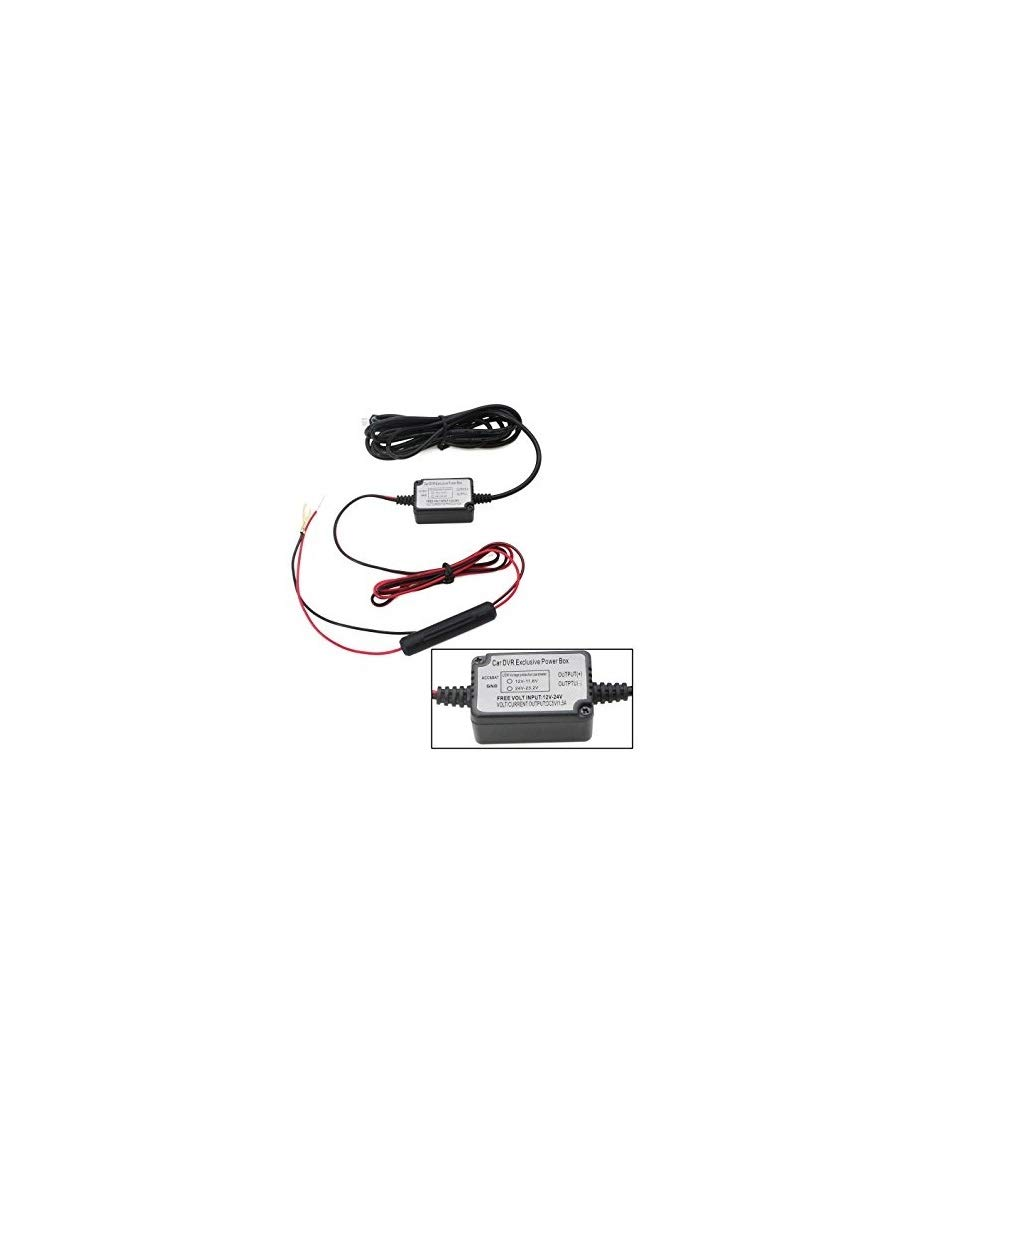 Spytec Mini Hardwire Fuse Kit Dash Cam Curt T Connector Wiring Usb Keeps 12v Outlet Free Cell Phones Accessories